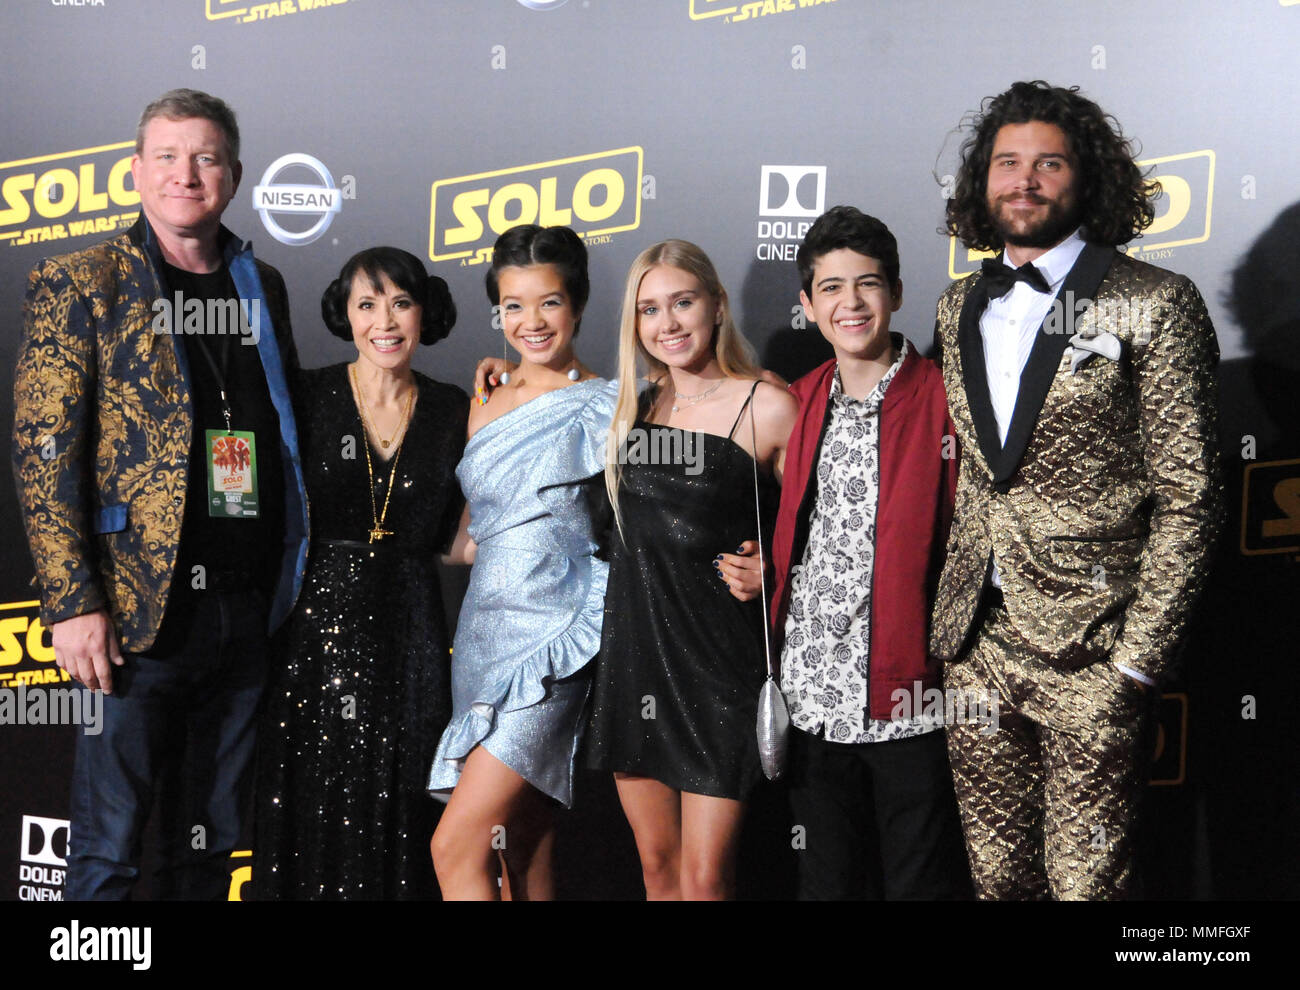 Hollywood, California, USA. 10th May, 2018. (L-R) Actors Stoney Westmoreland, Lauren Tom, Peyton Elizabeth Lee, Emily Skinner, Joshua Rush and Trent Garrett attend the premiere of Disney Pictures and Lucasfilms' 'Solo: A Star Wars Story' at the Dolby Theatre, El Capitan Theatre and Grauman's Chinese Theatre on May 10, 2018 in Hollywood, California. Photo by Barry King/Alamy Live News - Stock Image